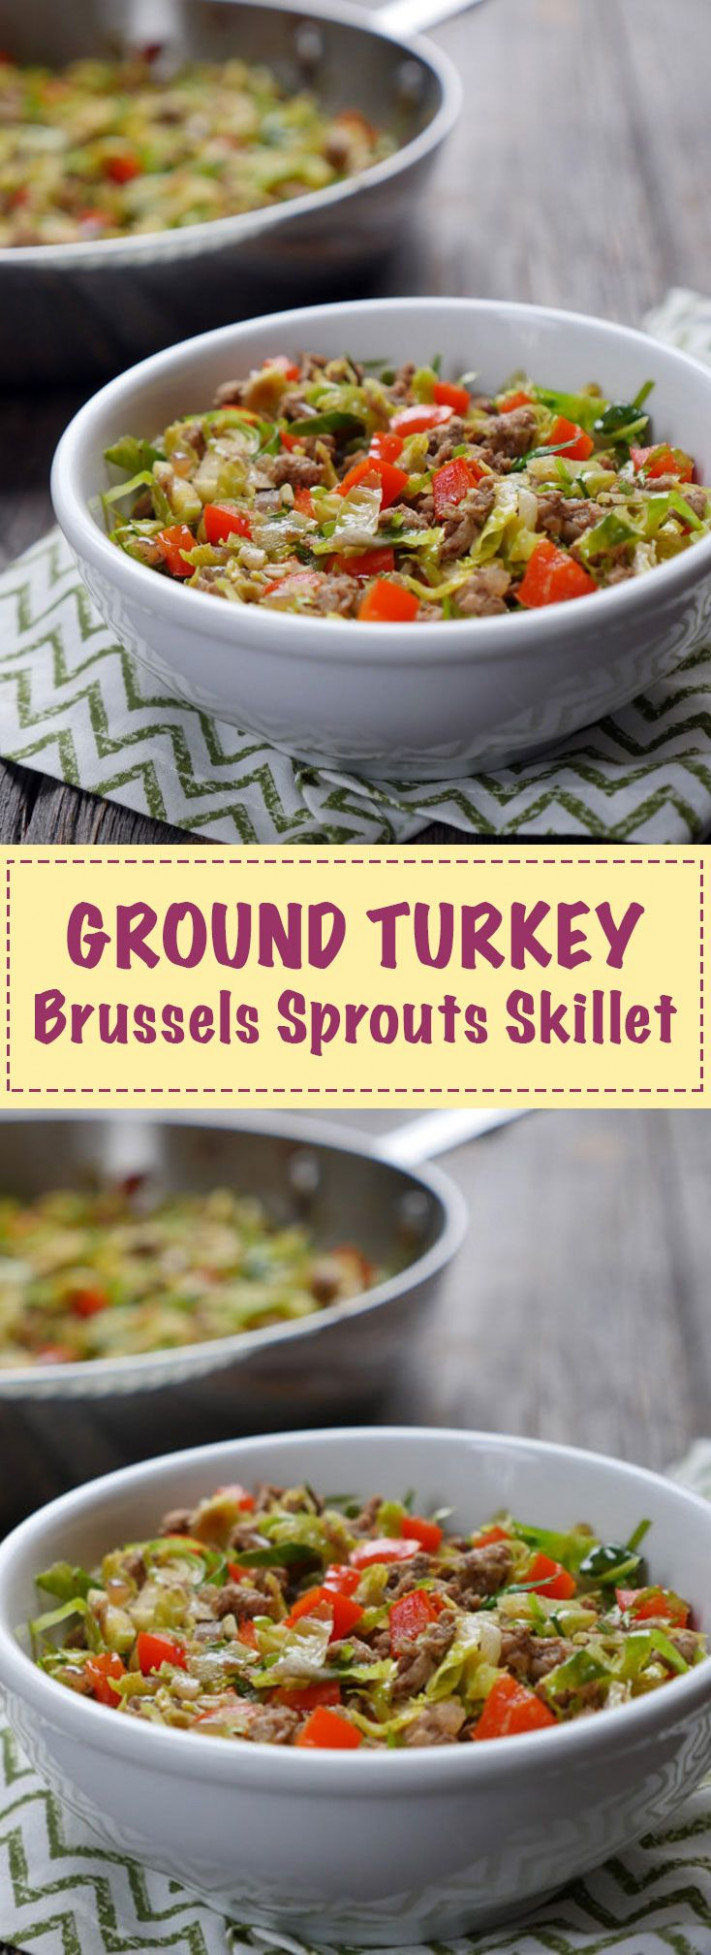 Ground Turkey Brussels Sprouts Skillet by Ashley of ...